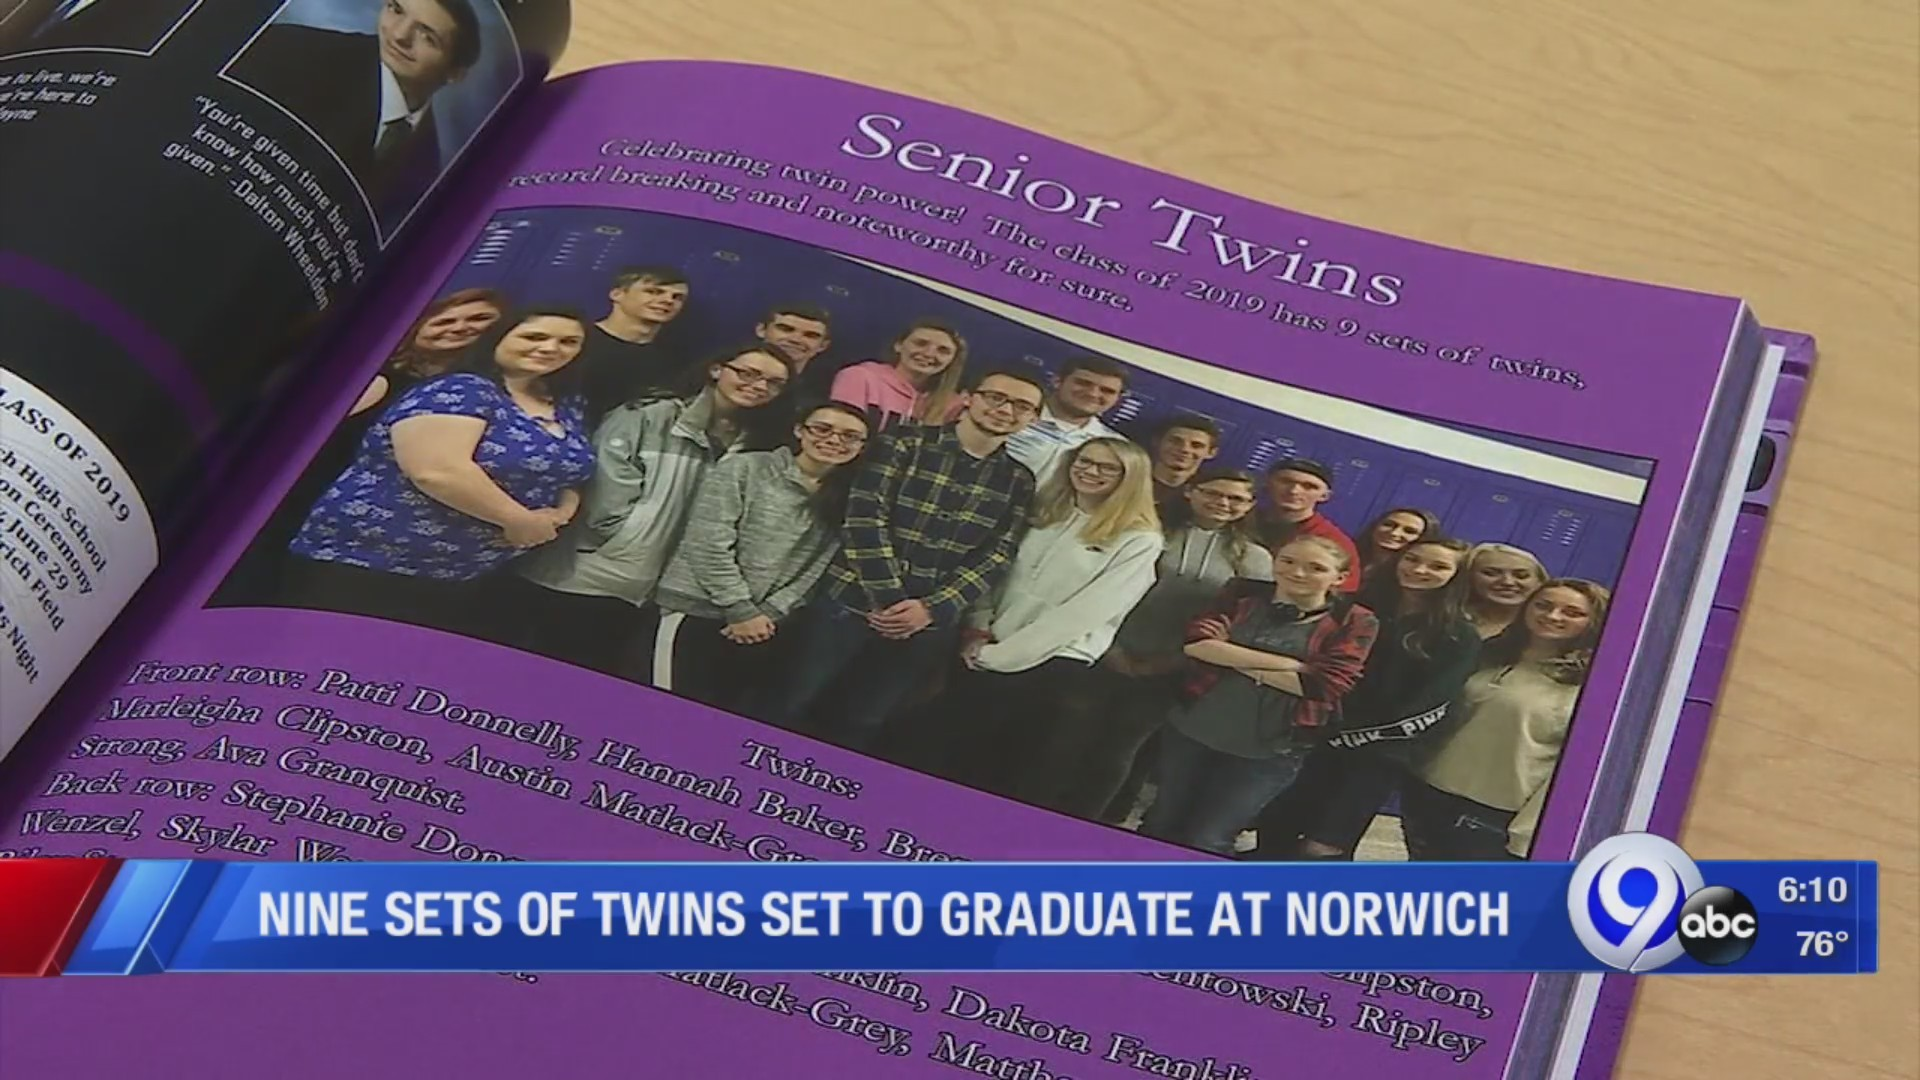 Norwich_to_graduate_9_sets_of_twins_in_C_0_20190612221542